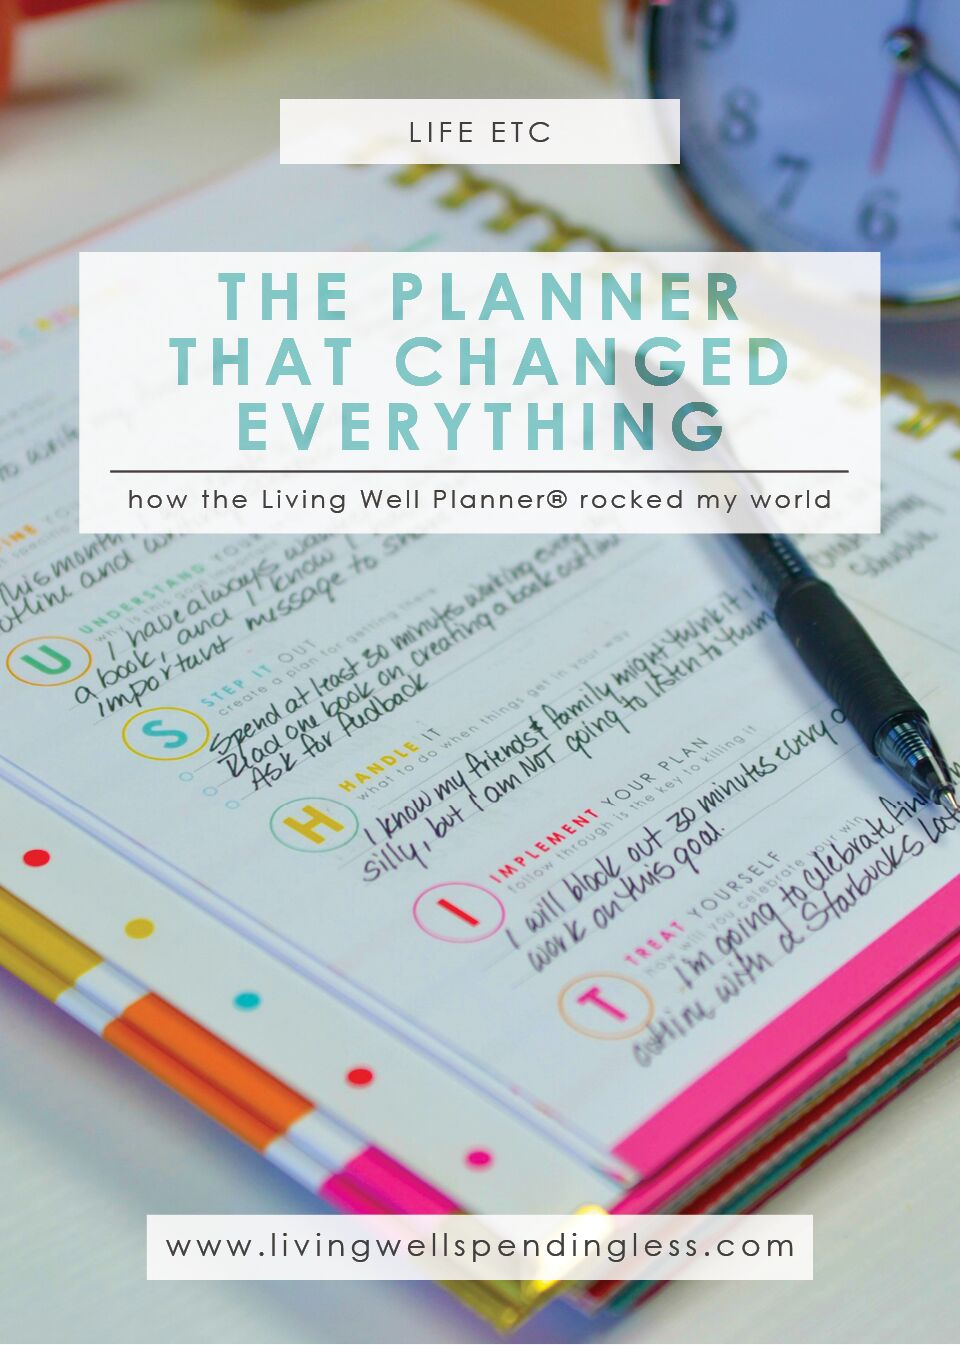 The Planner That Changed Everything: How the Living Well Planner Rocked My World!